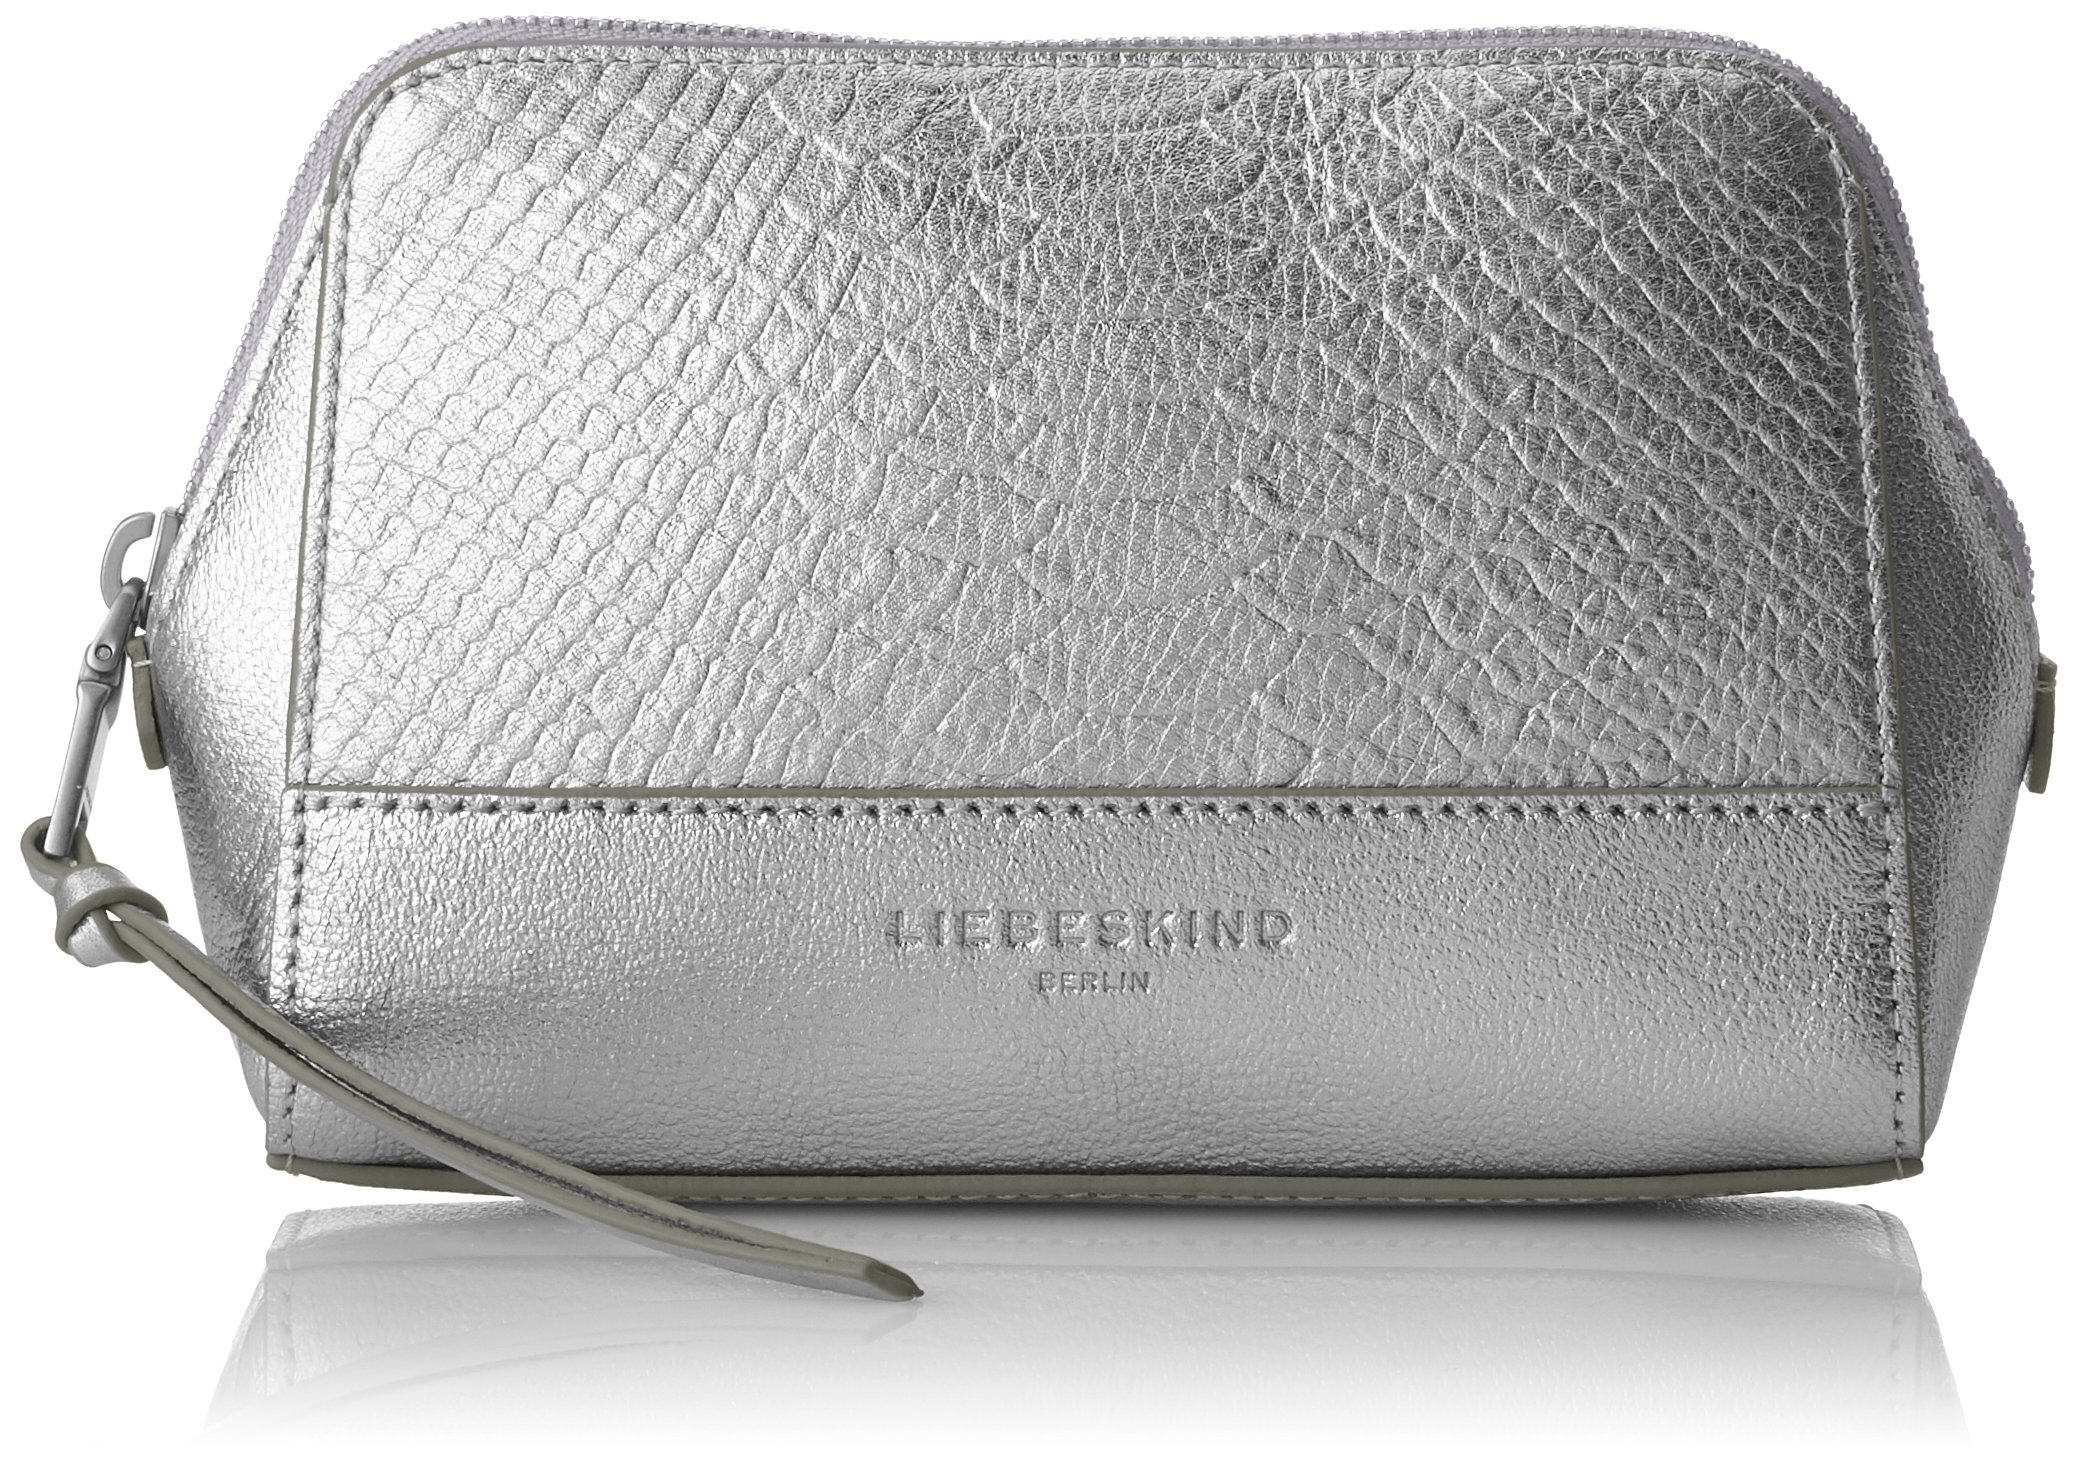 Liebeskind Berlin Women's Rhinebeck Metallic Leather Cosmetic Case, Silver by Liebeskind Berlin (Image #1)